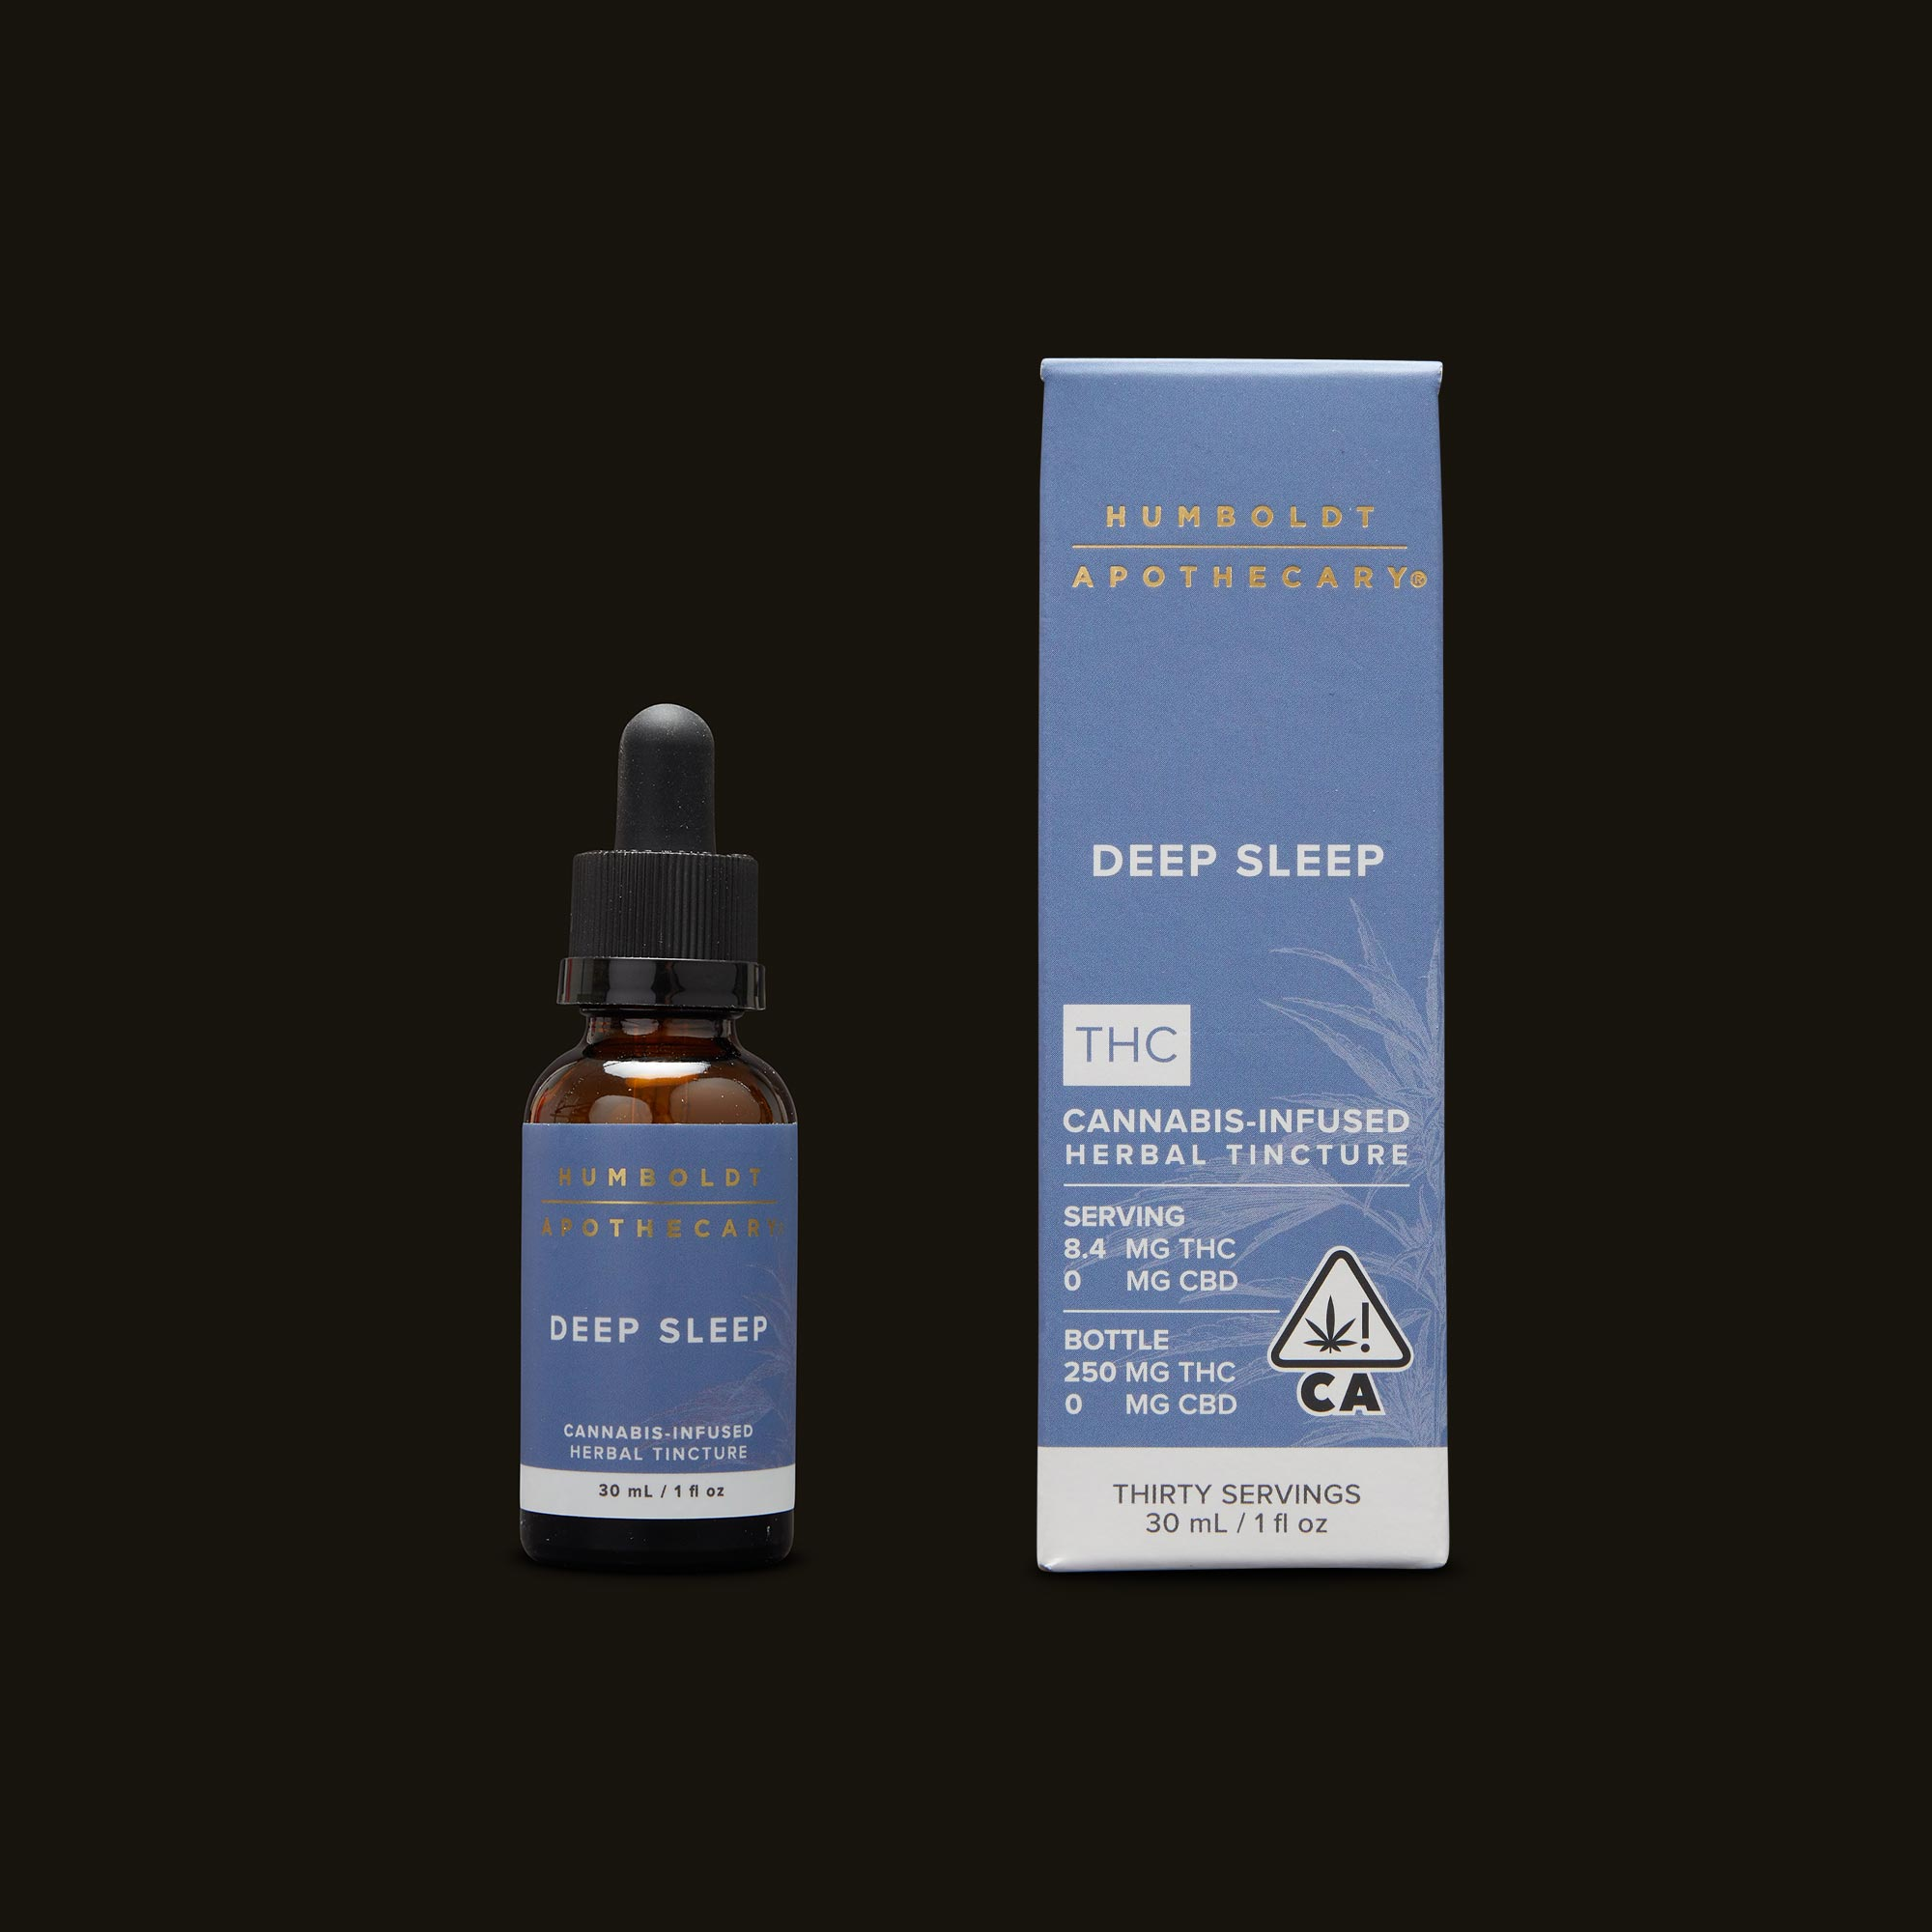 Humboldt Apothecary Deep Sleep Tincture and Packaging